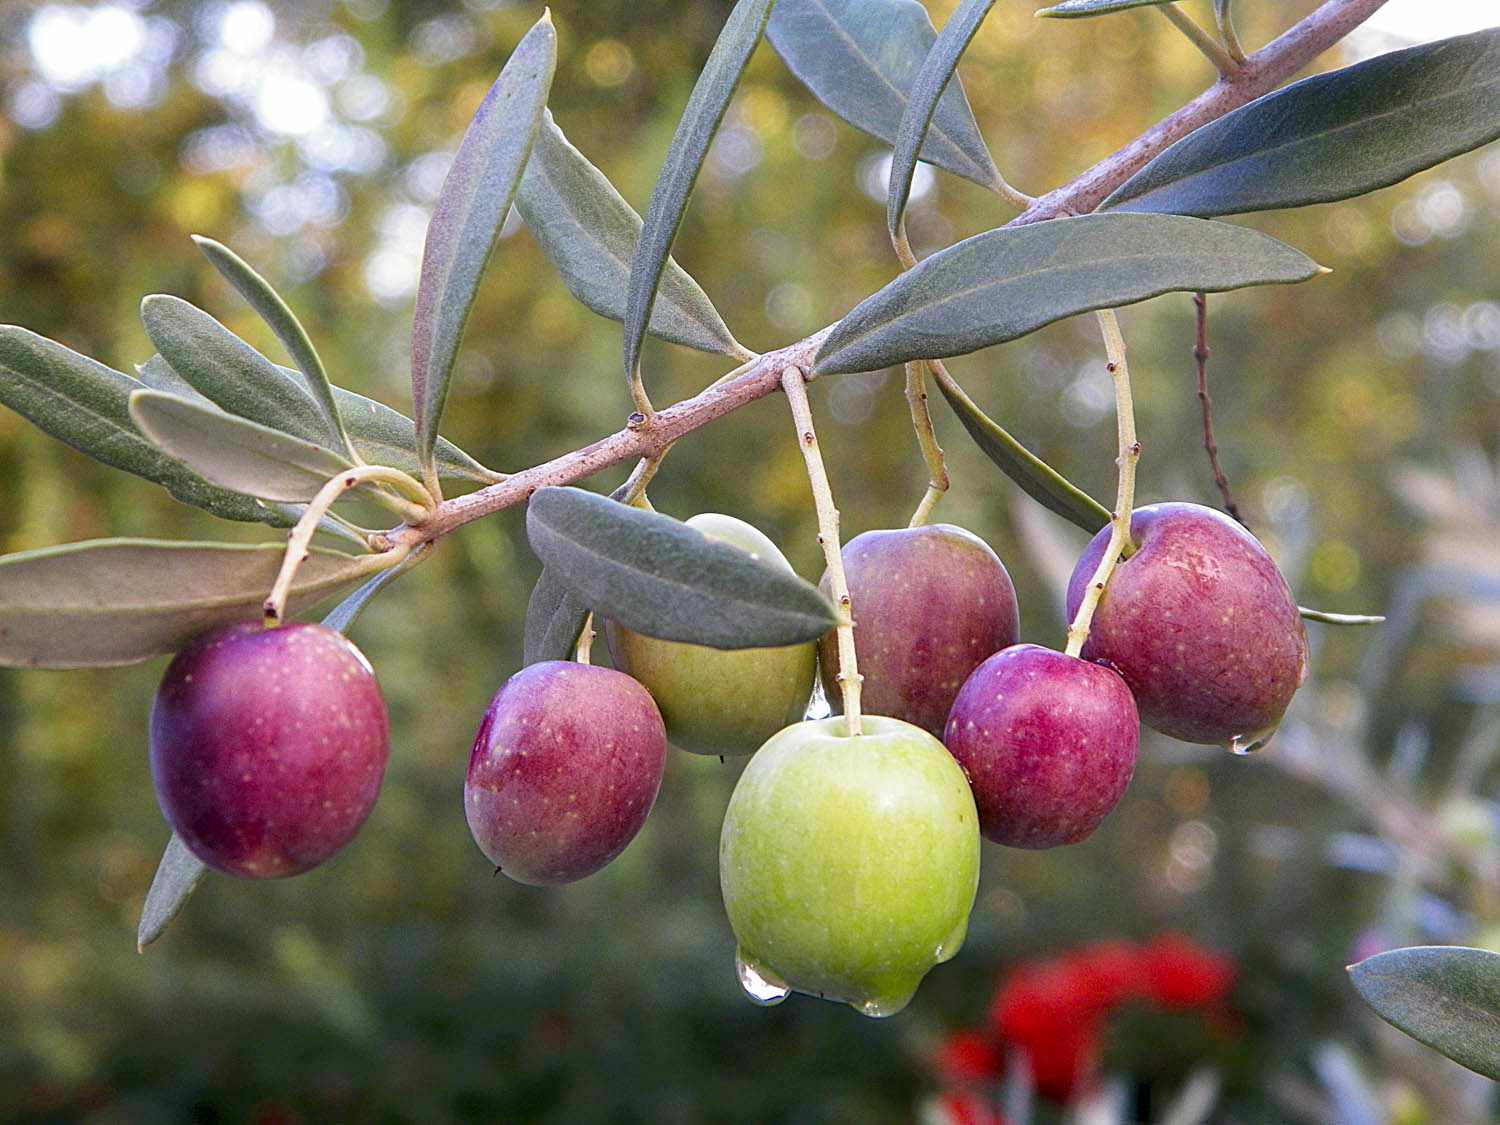 20140910-olives-flickr-cassiopee2010-12-.jpg